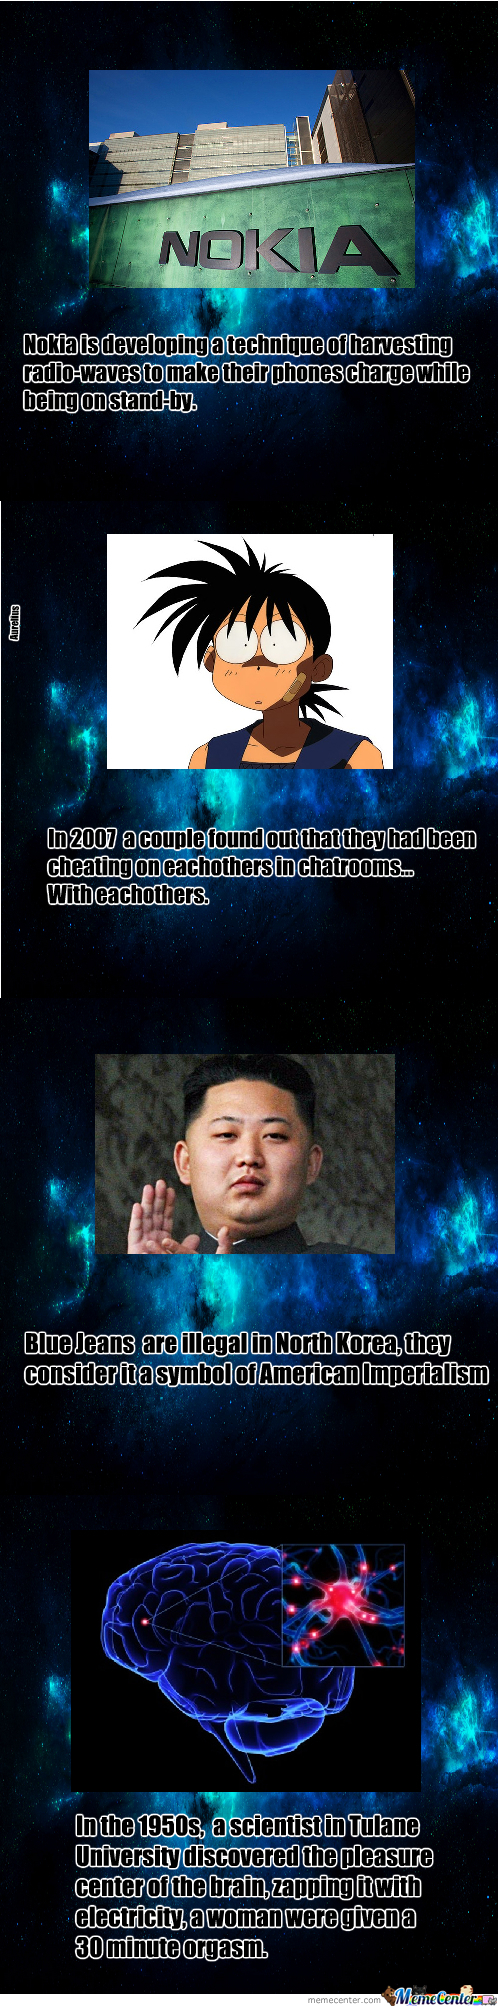 Zomg Memecenter Gets Another Round Of Facts!